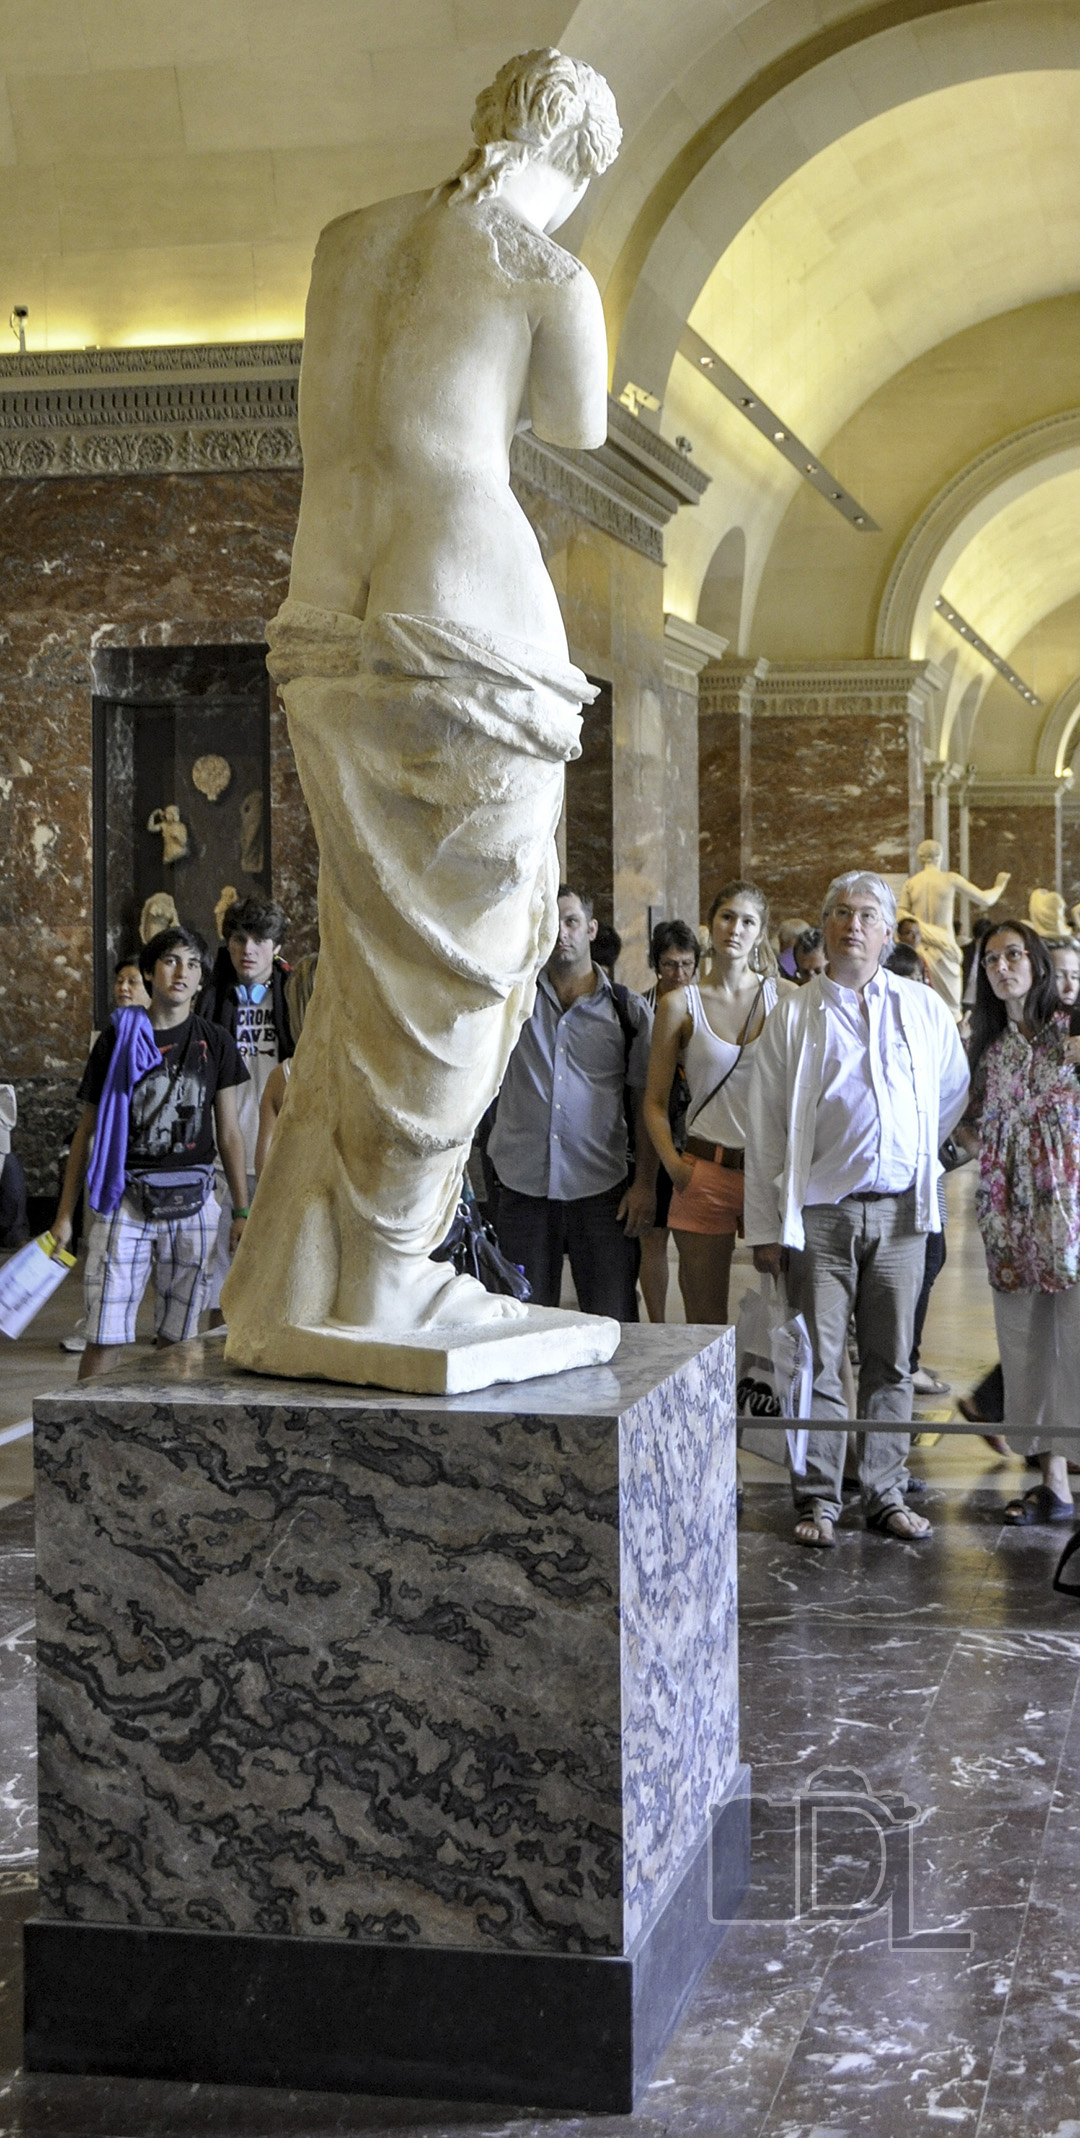 Tourists at The Louvre in Paris engage in a staring contest with Alexandros of Antioch's Venus de Milo statue.